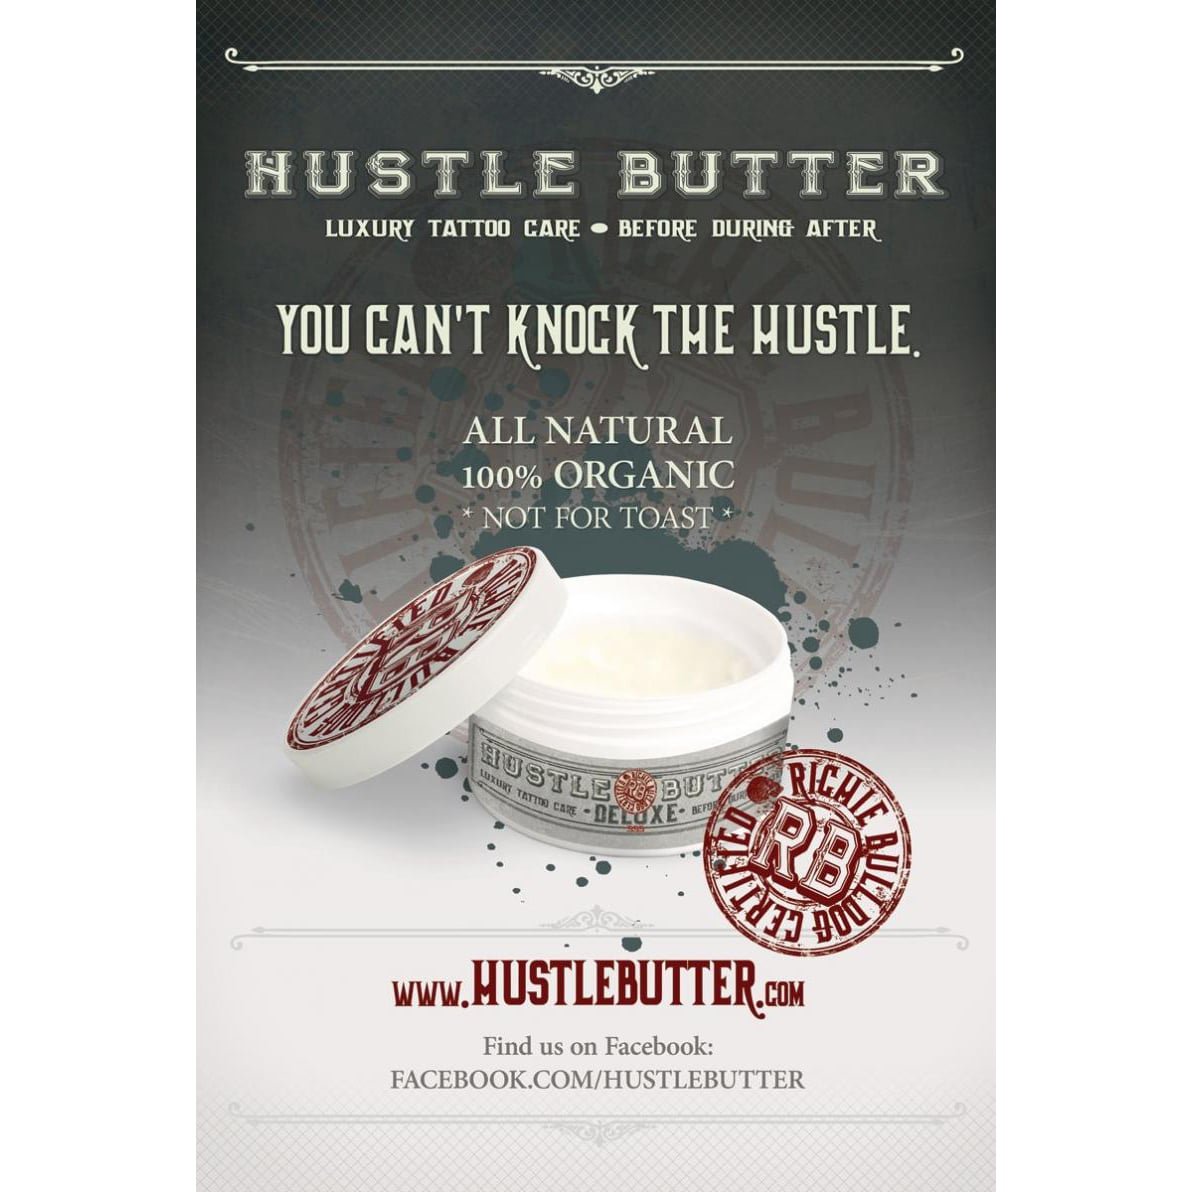 Hustle Butter Deluxe Before & After Tattoo